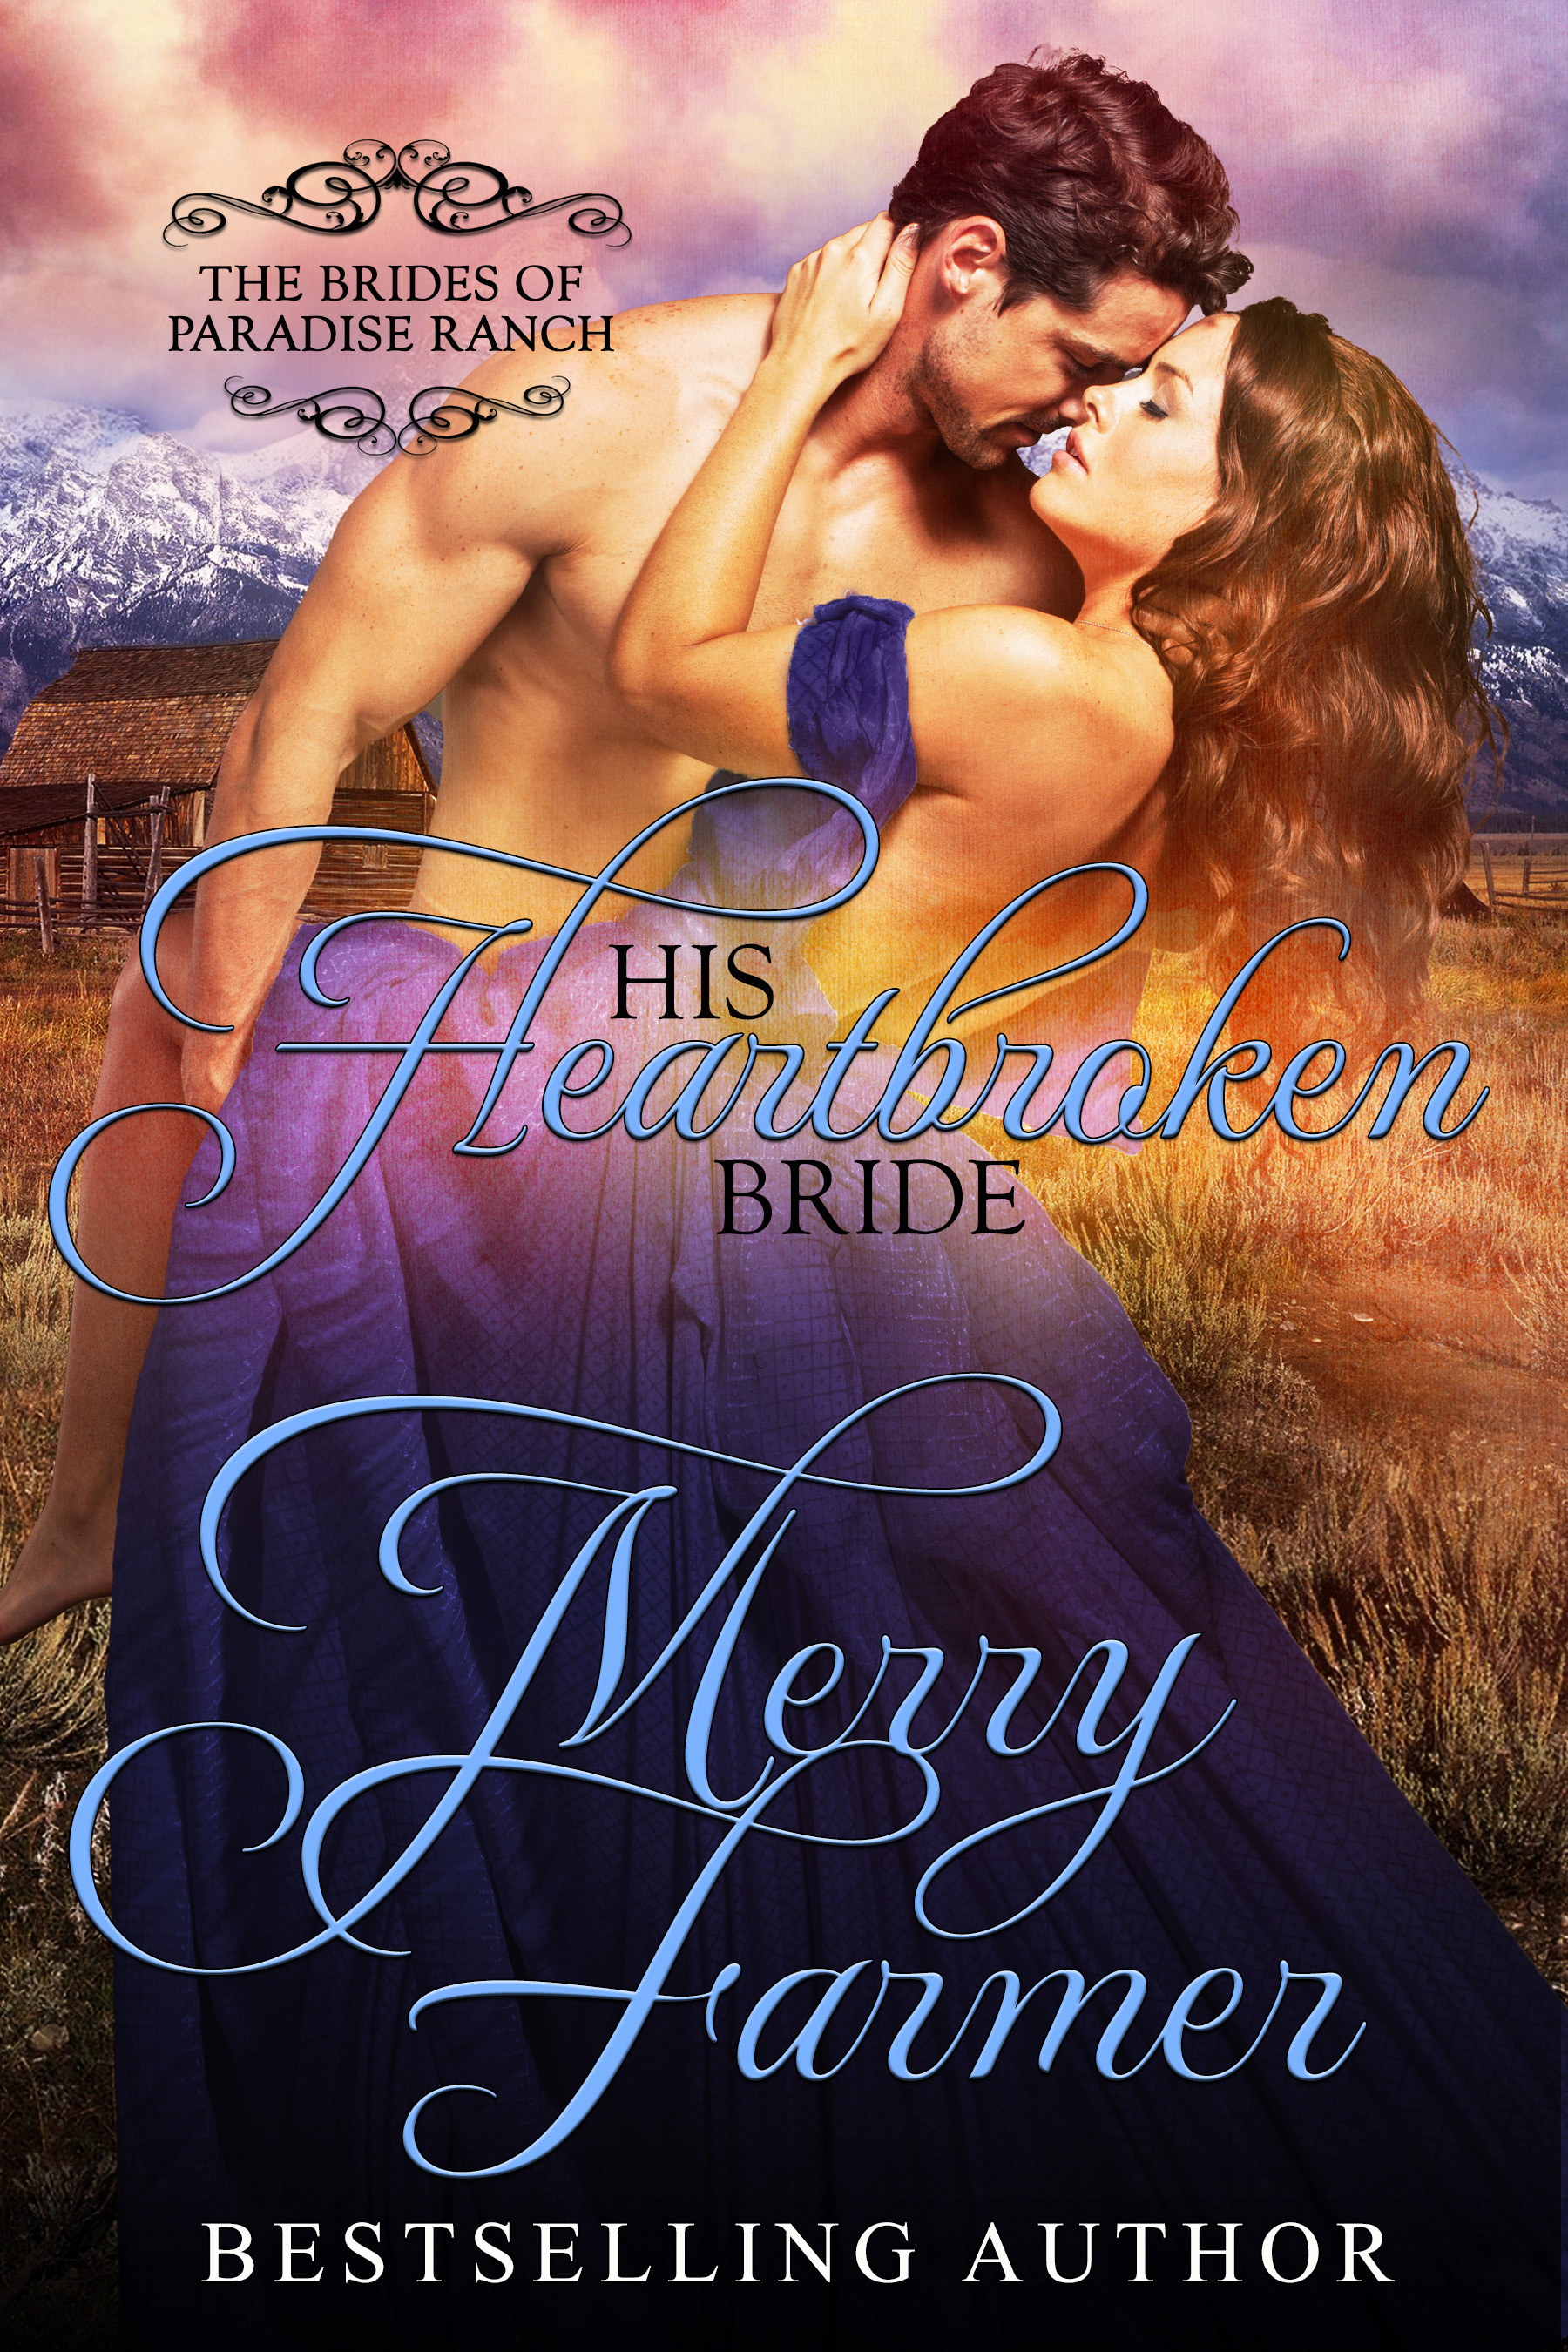 """His Heartbroken Bride (Book 4) - Libby Chance Sims was orphaned, along with her siblings, at an early age, traveled west on the Oregon Trail, and thought she had her fairytale ending when she met and married a good man at trail's end. But ten years later, when her husband is killed in a logging accident, her life takes a horrific turn at the hands of unscrupulous """"family friend,"""" Hector. Fearing for herself and the lives of her two boys, she flees Oregon for Haskell, Wyoming and her family. But has she run far enough to escape her past?Mason Montrose has never forgotten Libby, the beautiful, young bride he fell in love with before realizing she was married ten years ago in Oregon. When she steps down from the train in Haskell, dressed in widow's black with fear in her eyes, all of the affection and longing for her that he thought he put behind him returns. He will stop at nothing to protect Libby from the demons chasing her, both real and emotional, even marrying her to keep her safe.Some demons are more sinister than others, though. When Hector arrives in Haskell, it takes more than the power of Mason's love and devotion to Libby to defeat him, it takes an entire community.PLEASE BE ADVISED: Steam Level = HOTIf you would like to read this story without any """"scenes,"""" check out Libby: The Heartbroken Bride"""